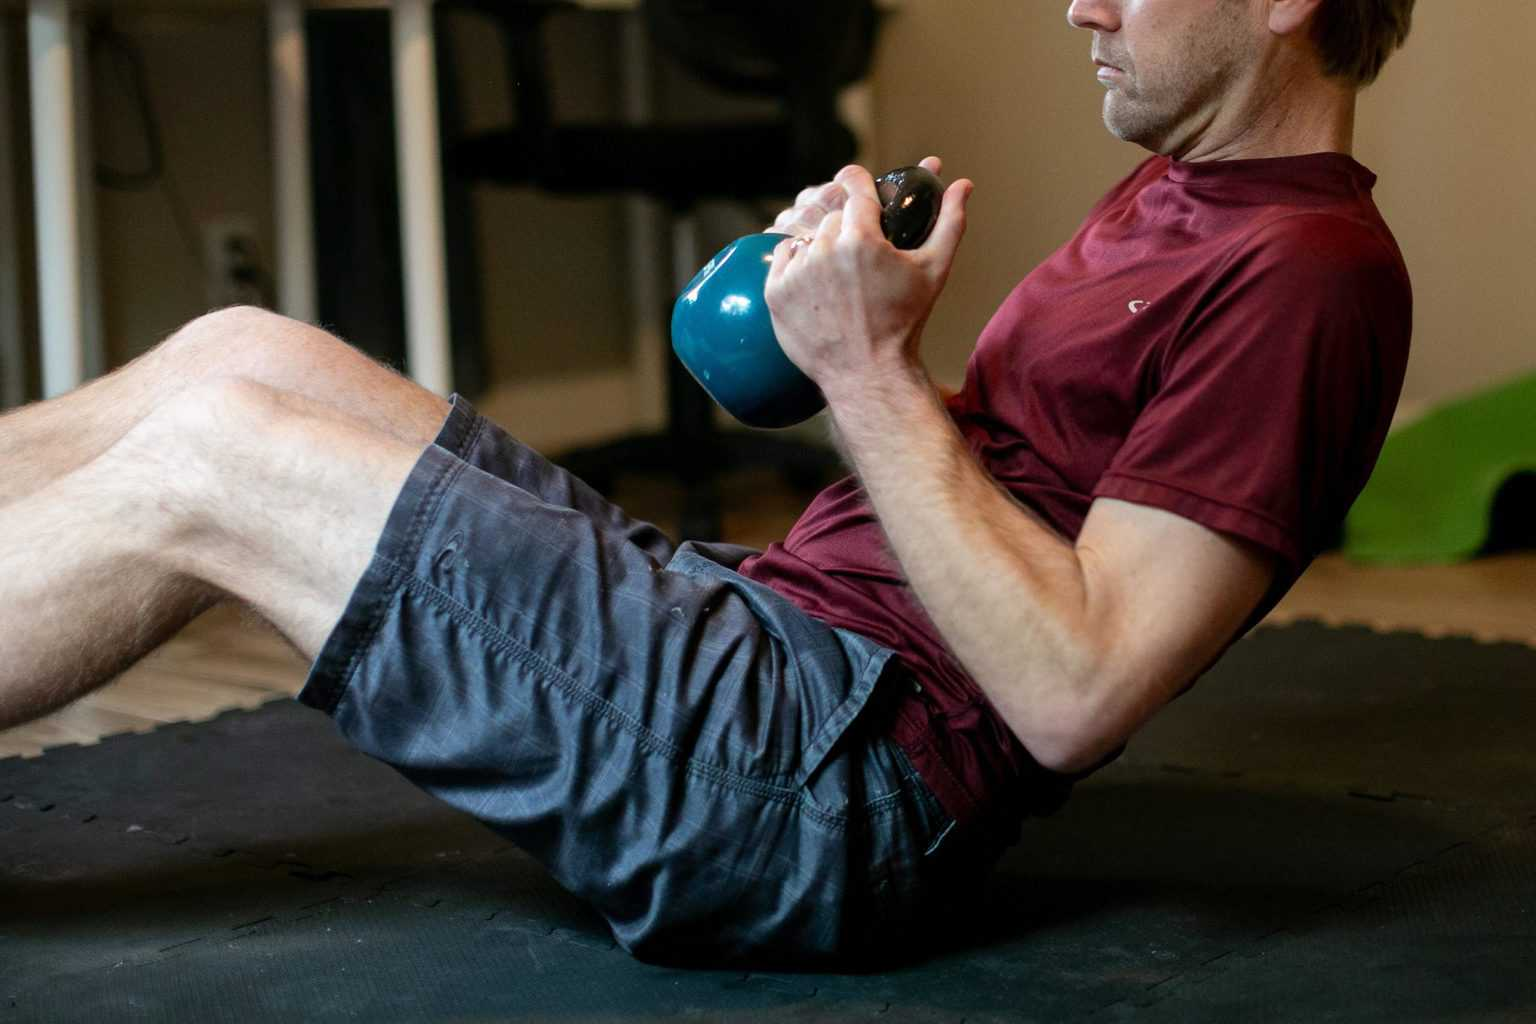 Man doing crunches while holding a kettlebell with both hands